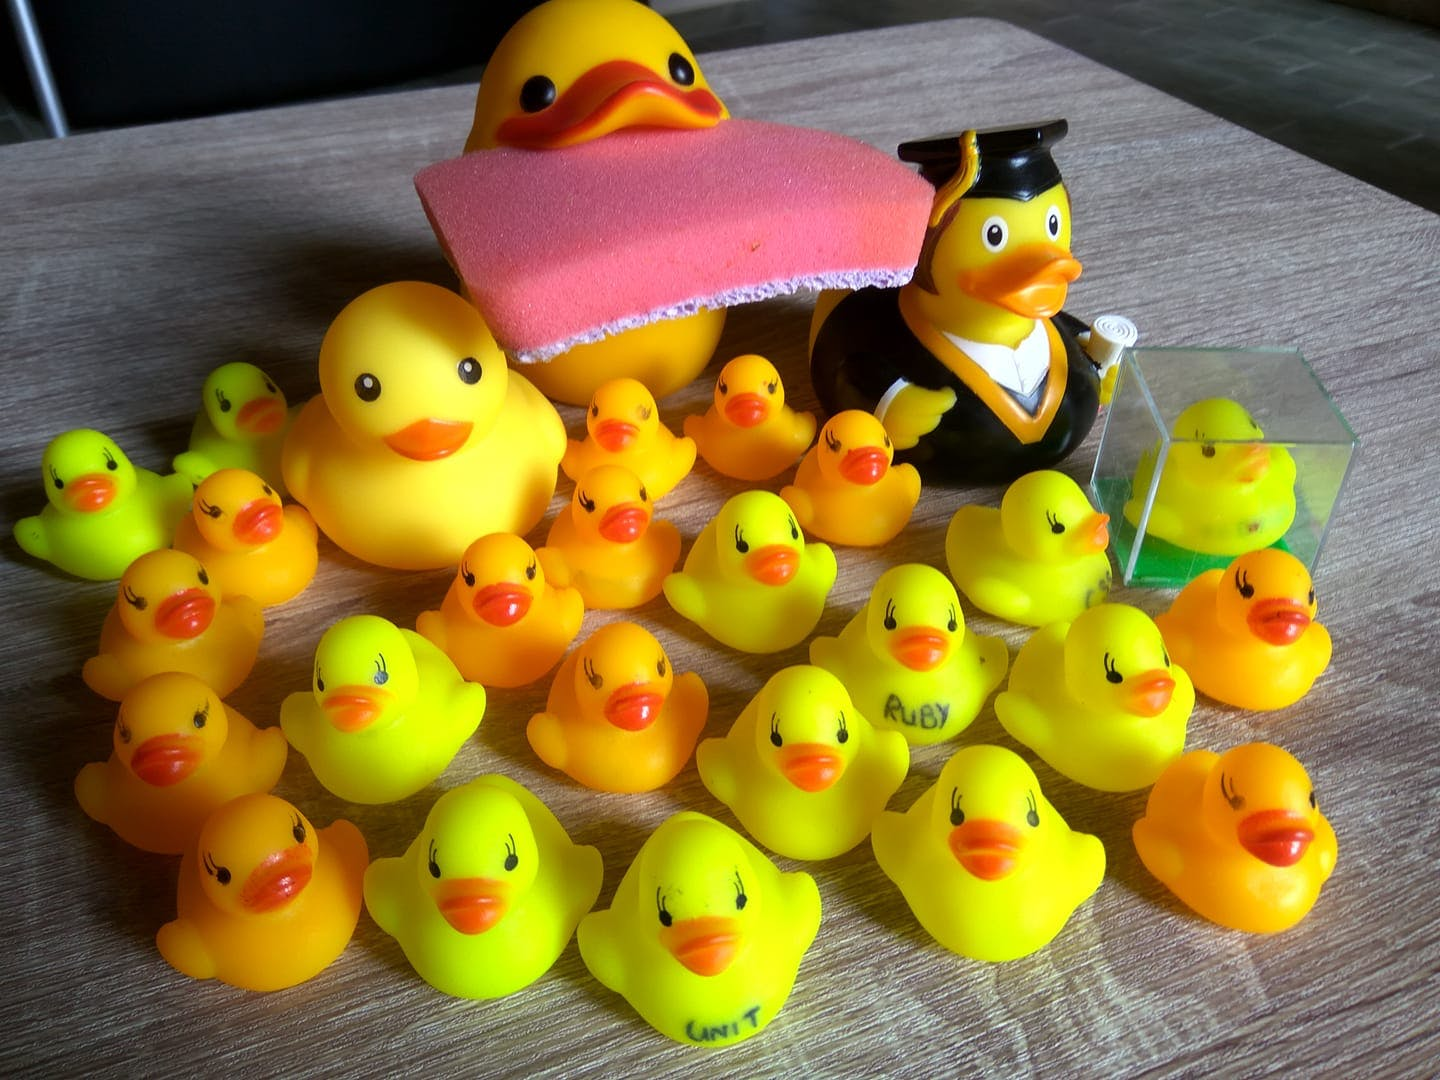 No rubber ducks were harmed during the making of this project